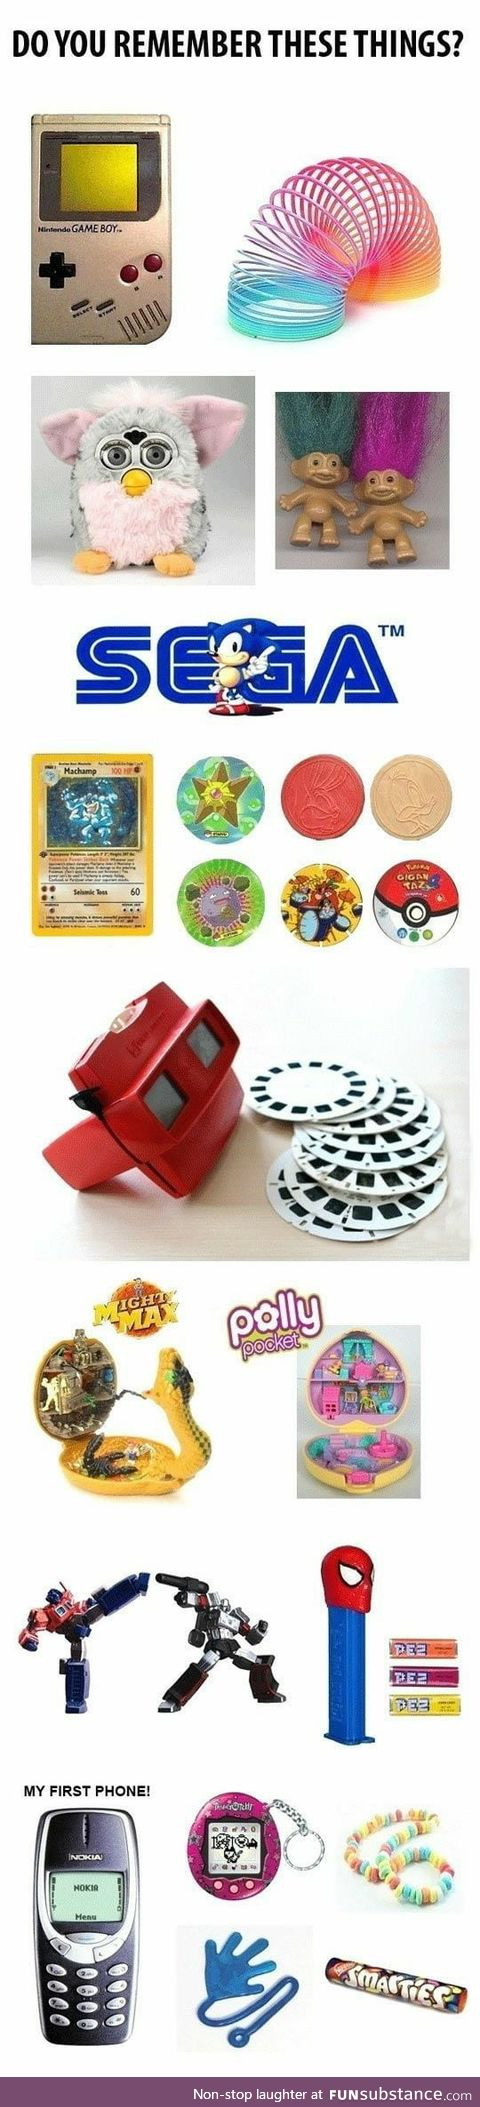 Our childhood was so cool